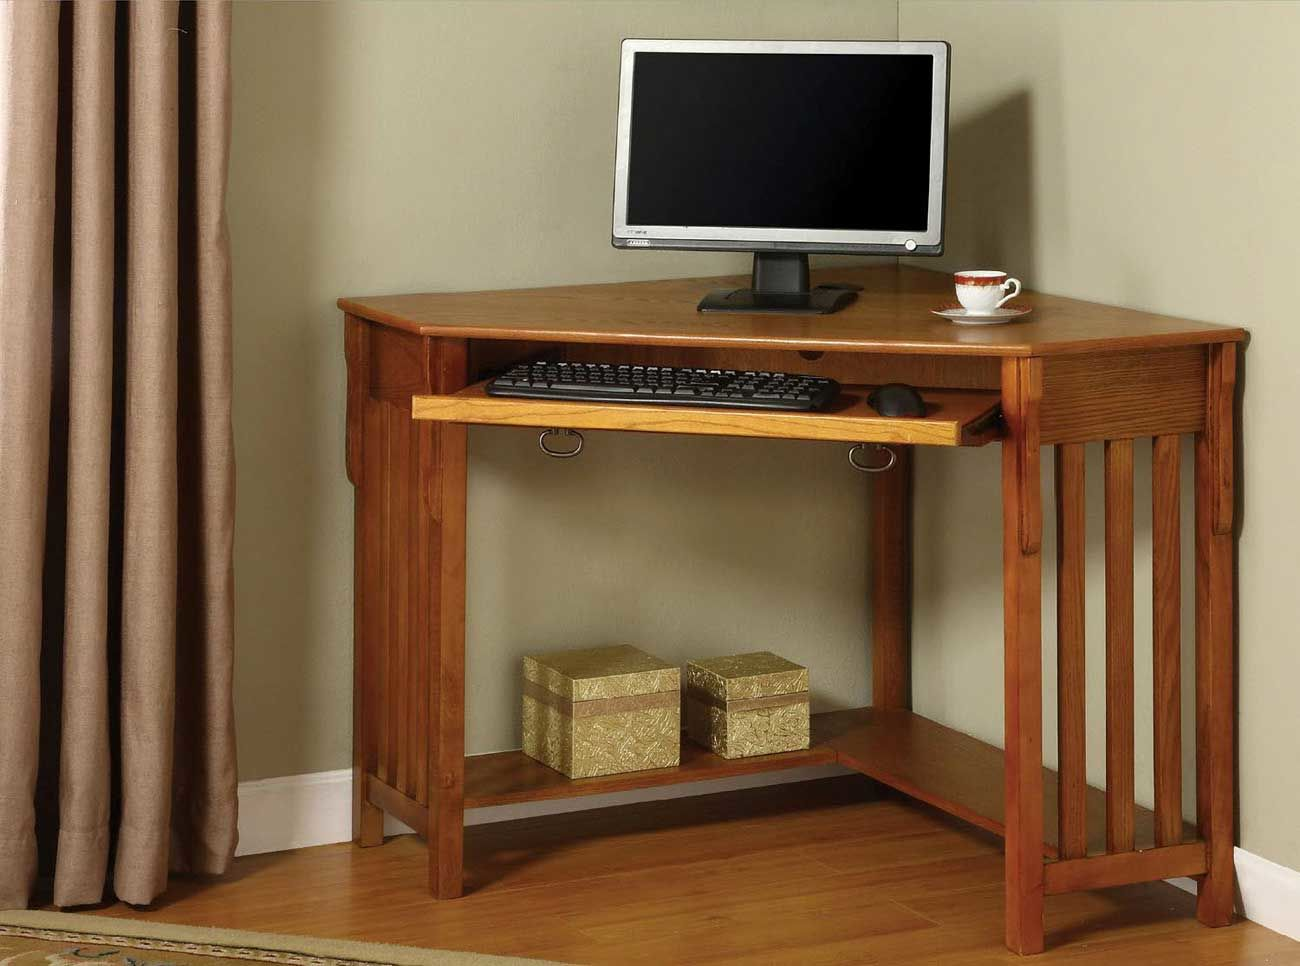 new sofa table plans wallpaper-Excellent sofa Table Plans Collection